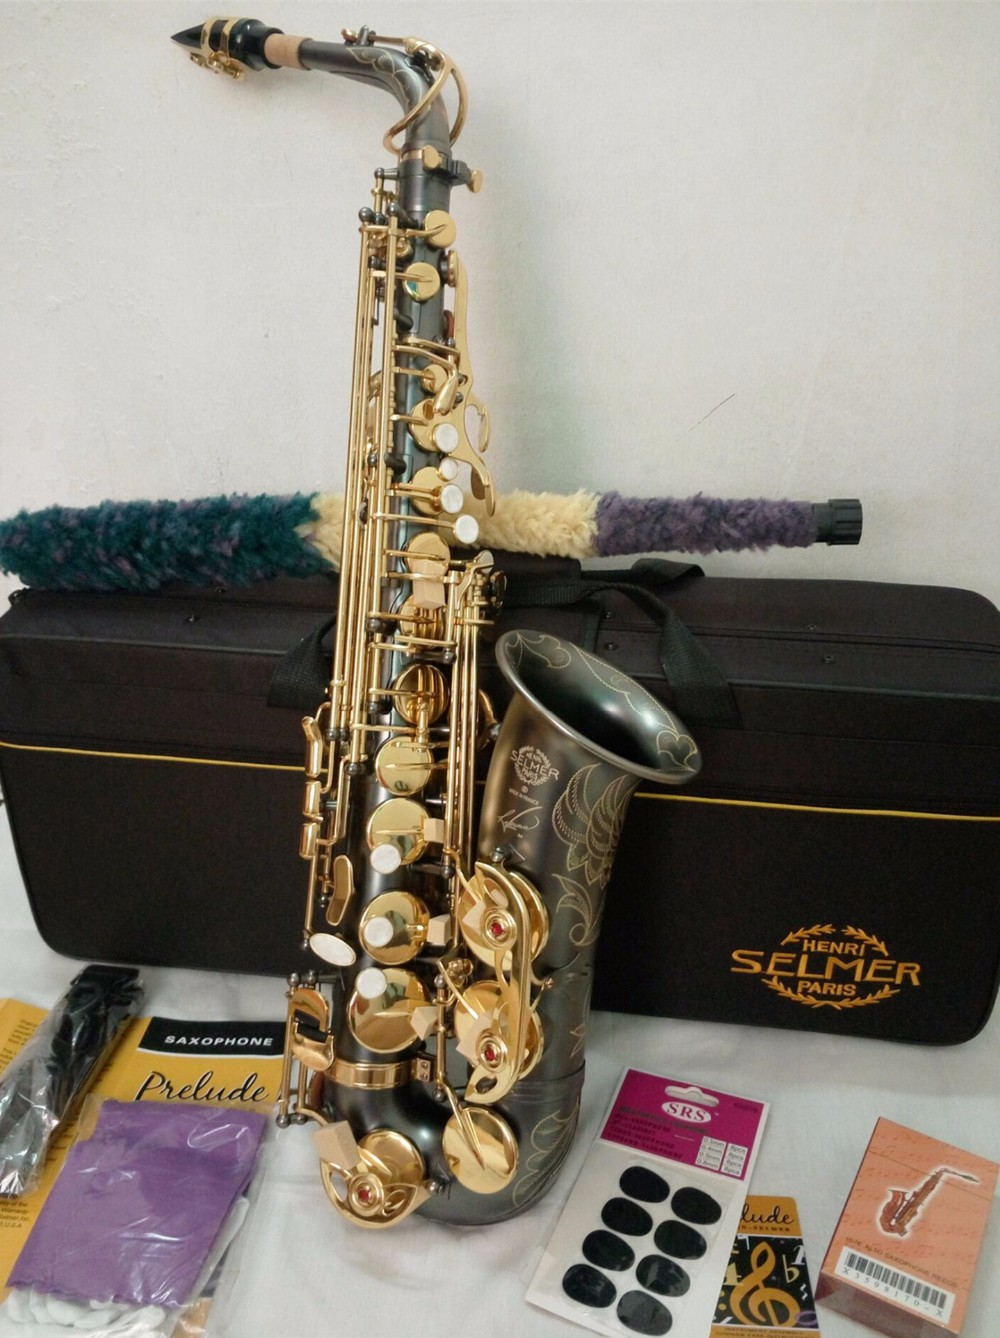 Alto Saxophone New High Quality Selmer 54 Sax Musical Instruments Professional And E-Flat Black Saxophone Alto Saxophone alto saxophone selmer 54 brass silver gold key e flat musical instruments saxophone with cleaning brush cloth gloves cork strap